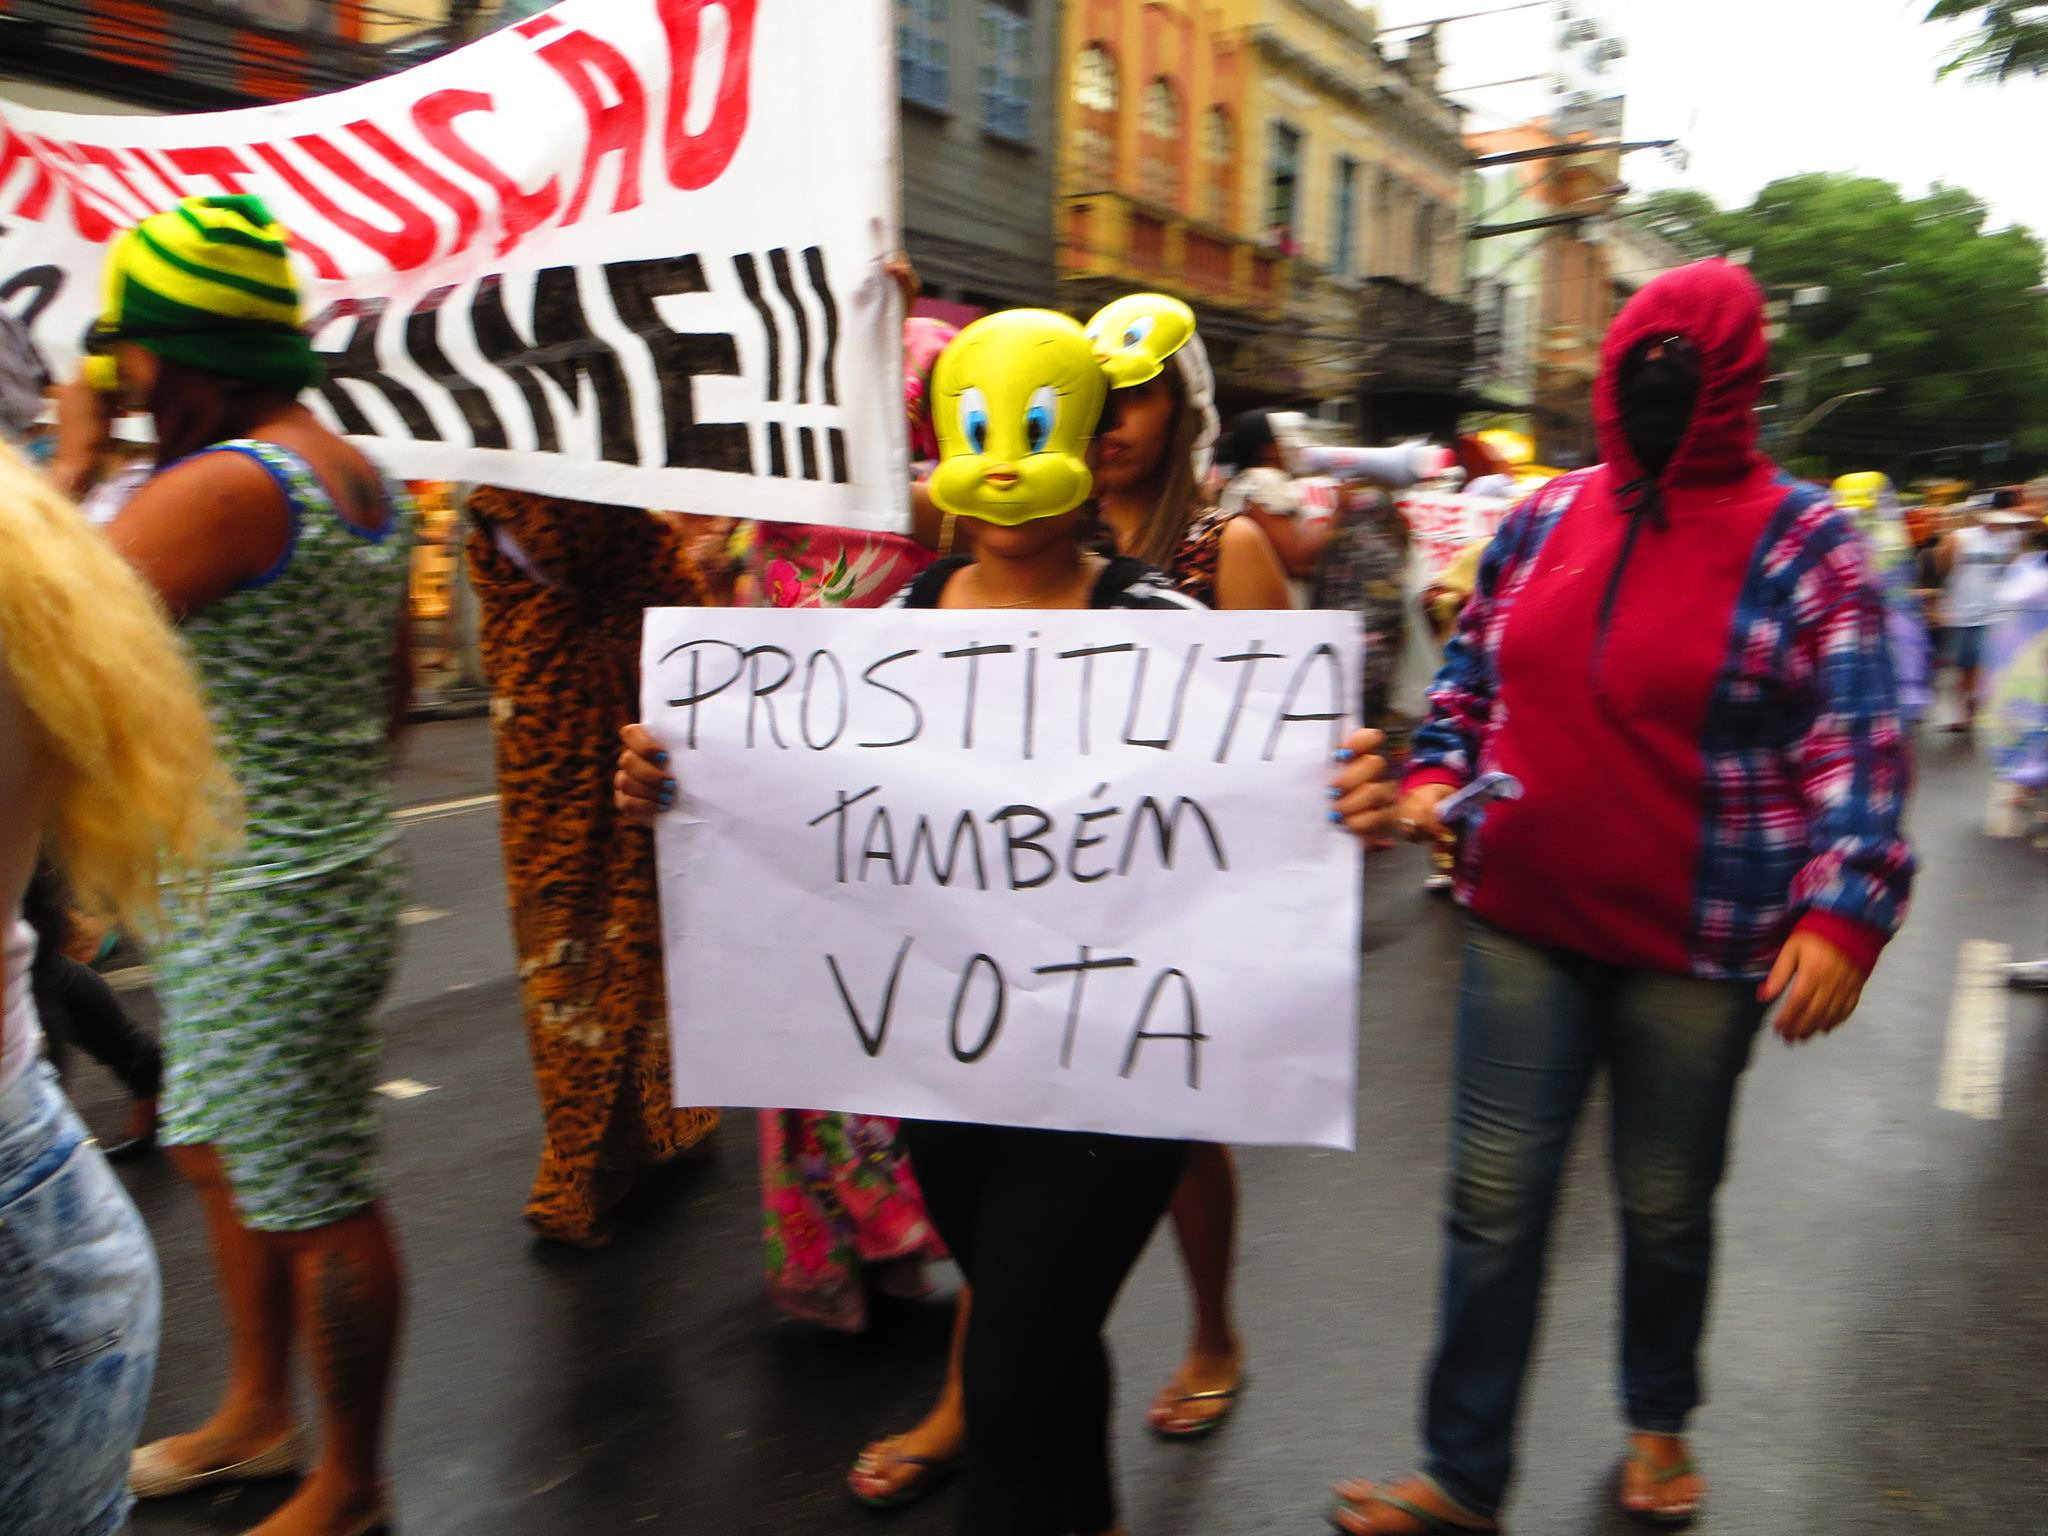 """Prostitutes also vote"""